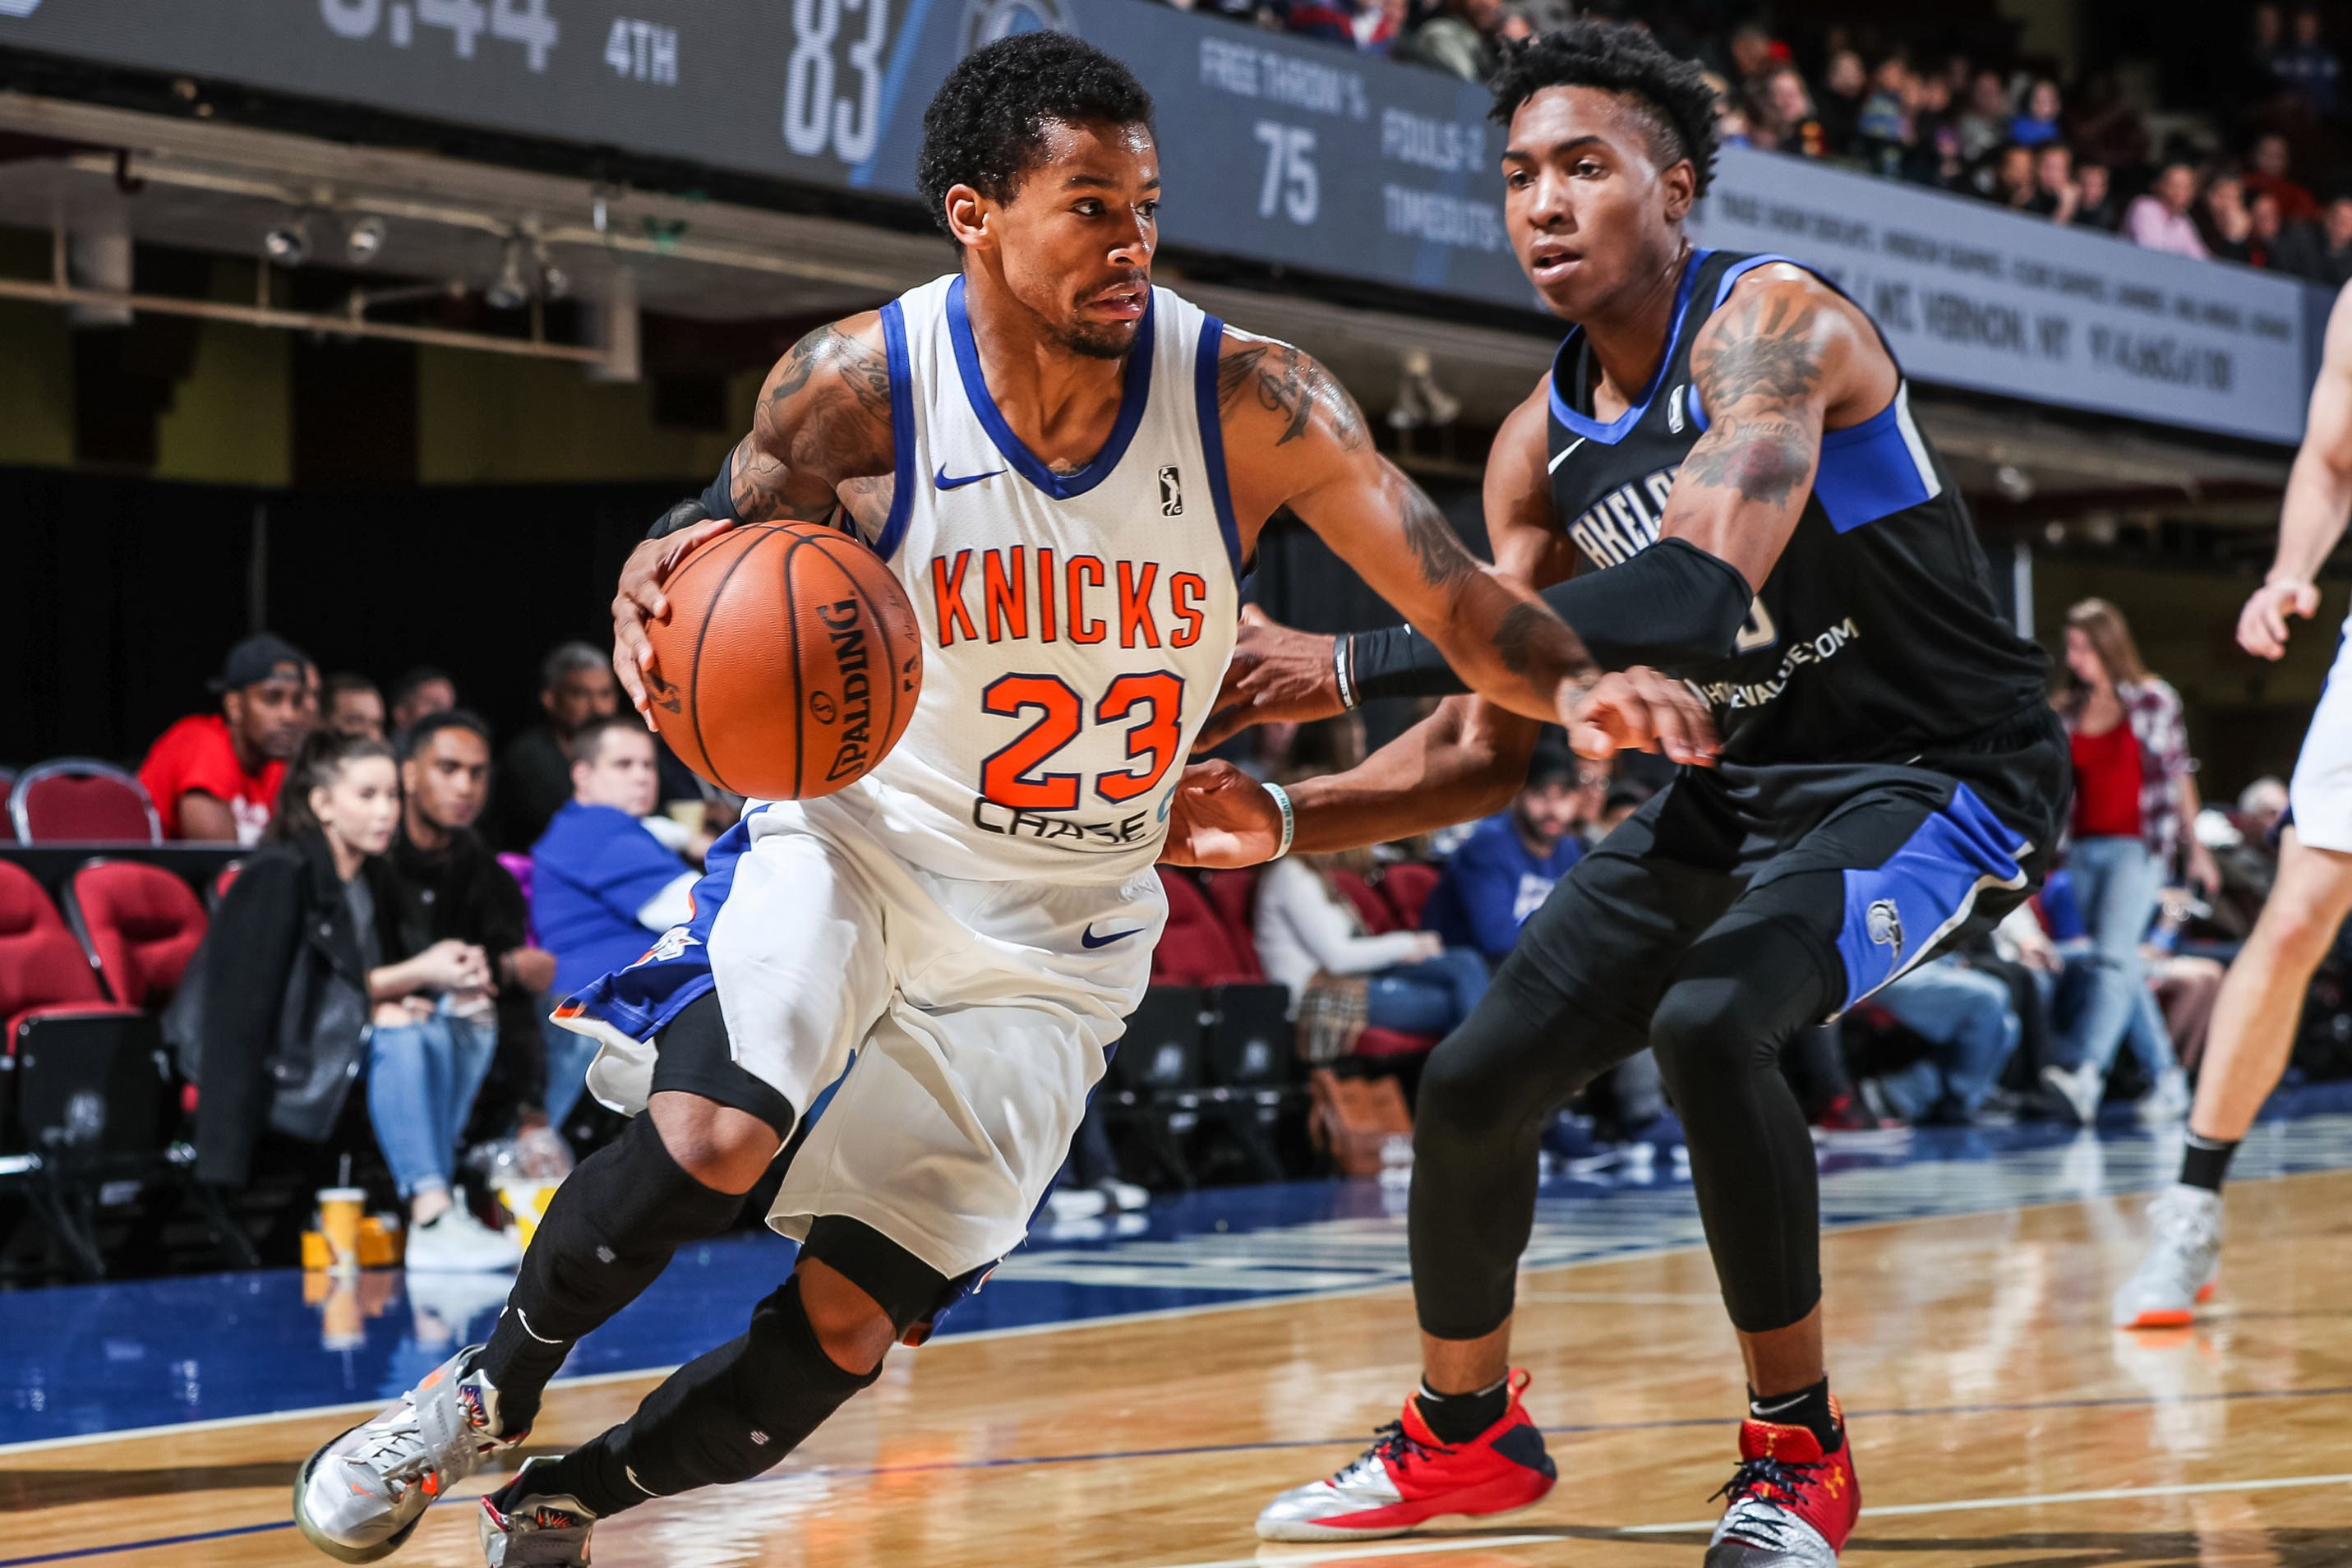 Knicks nearing deal with G League point guard sensation